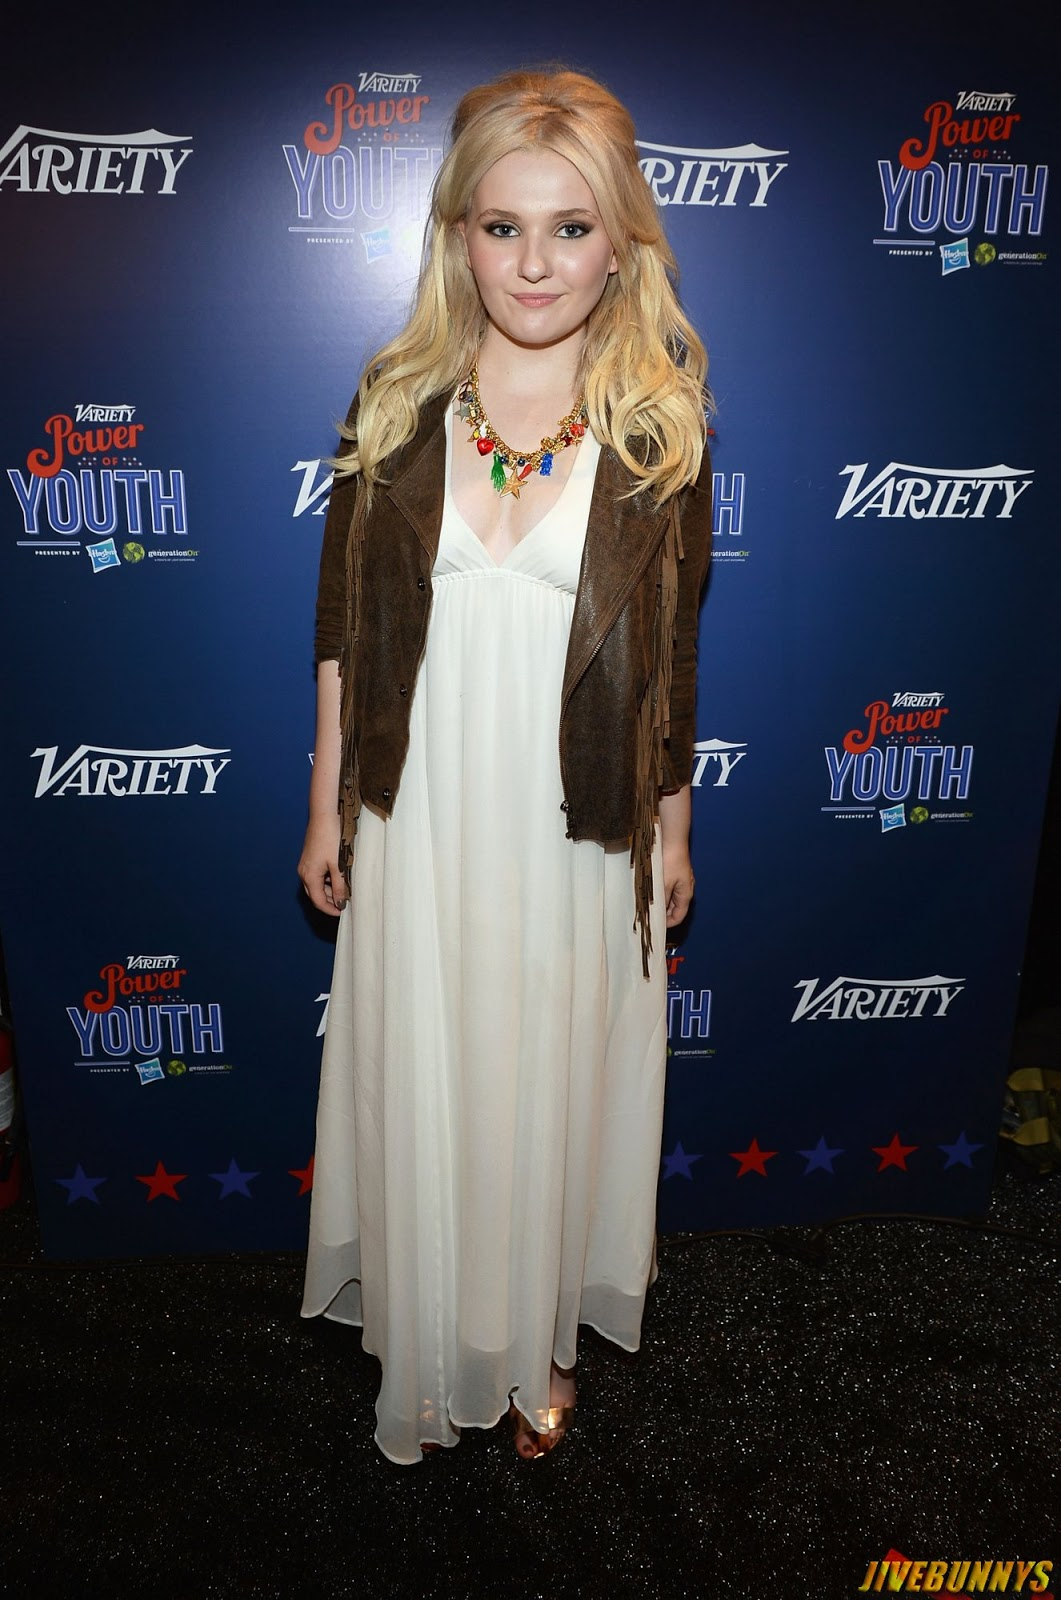 Abigail breslin sexy images gallery long white skirt